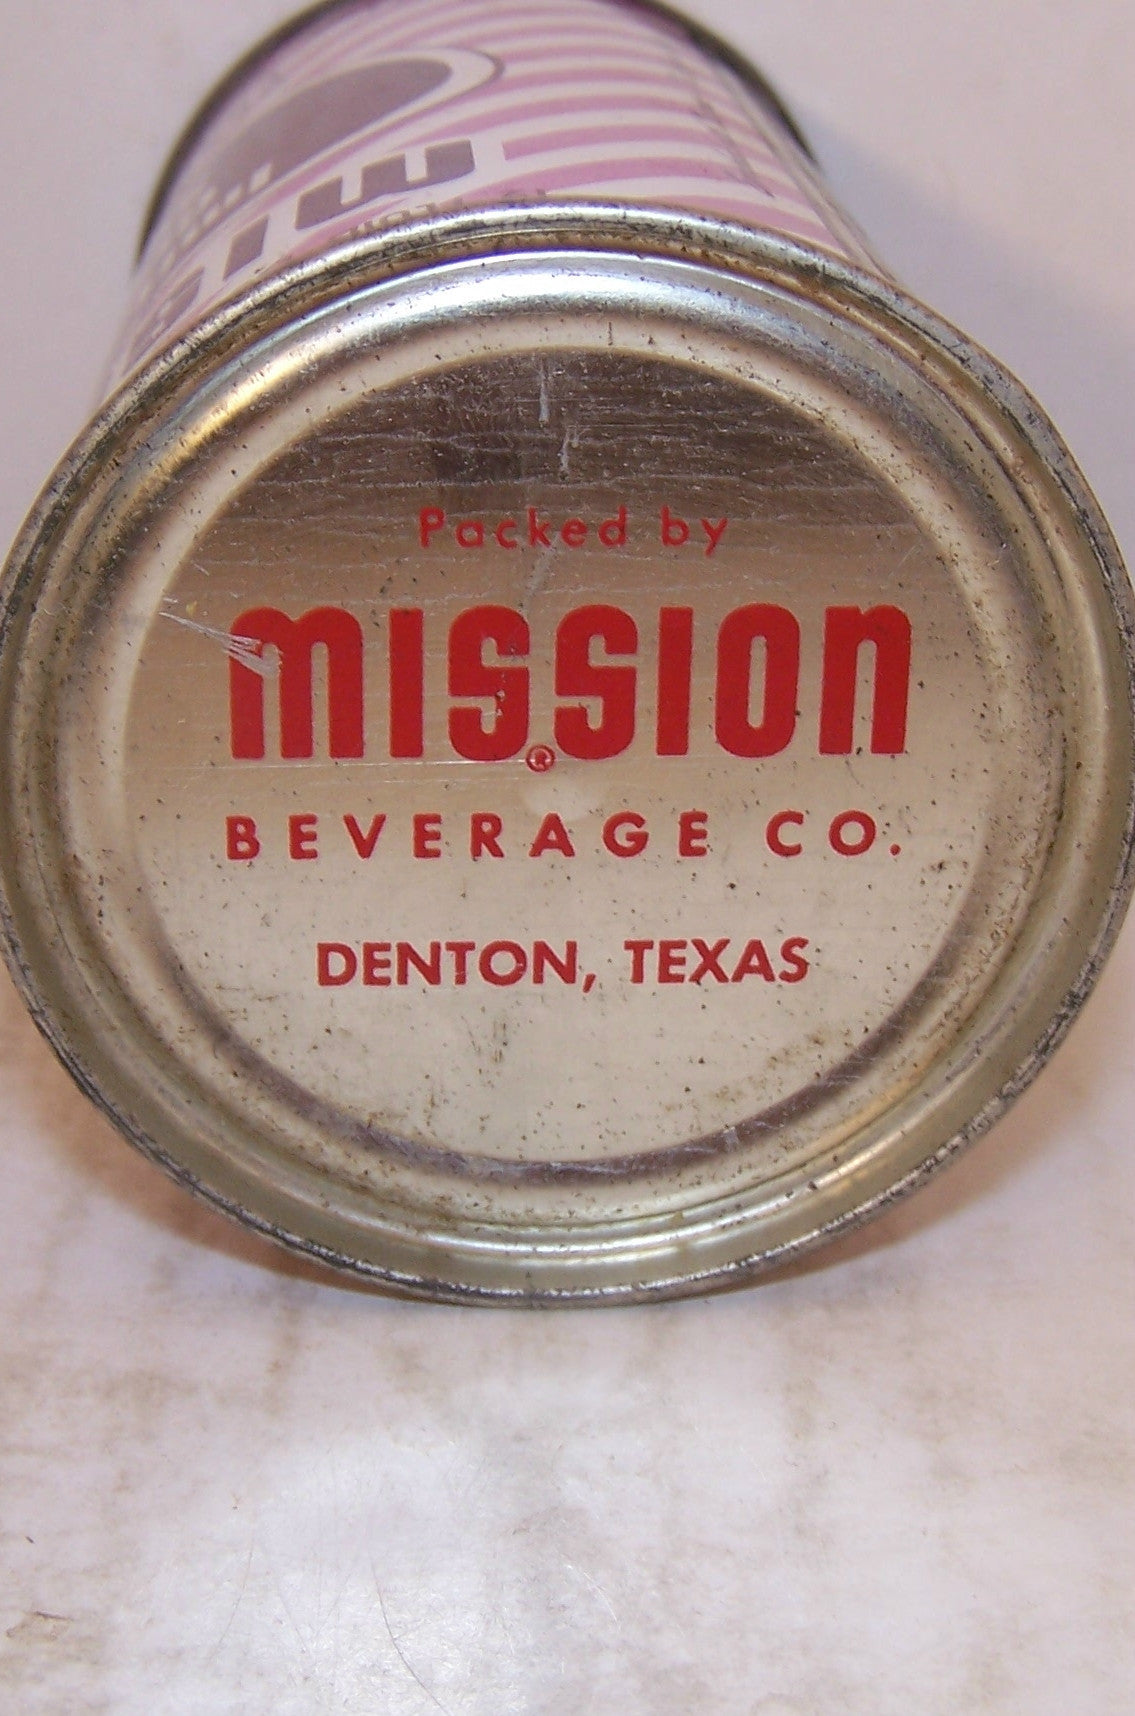 Mission Imitation Grape Soda, 2007 soda book page 84, Grade 1-